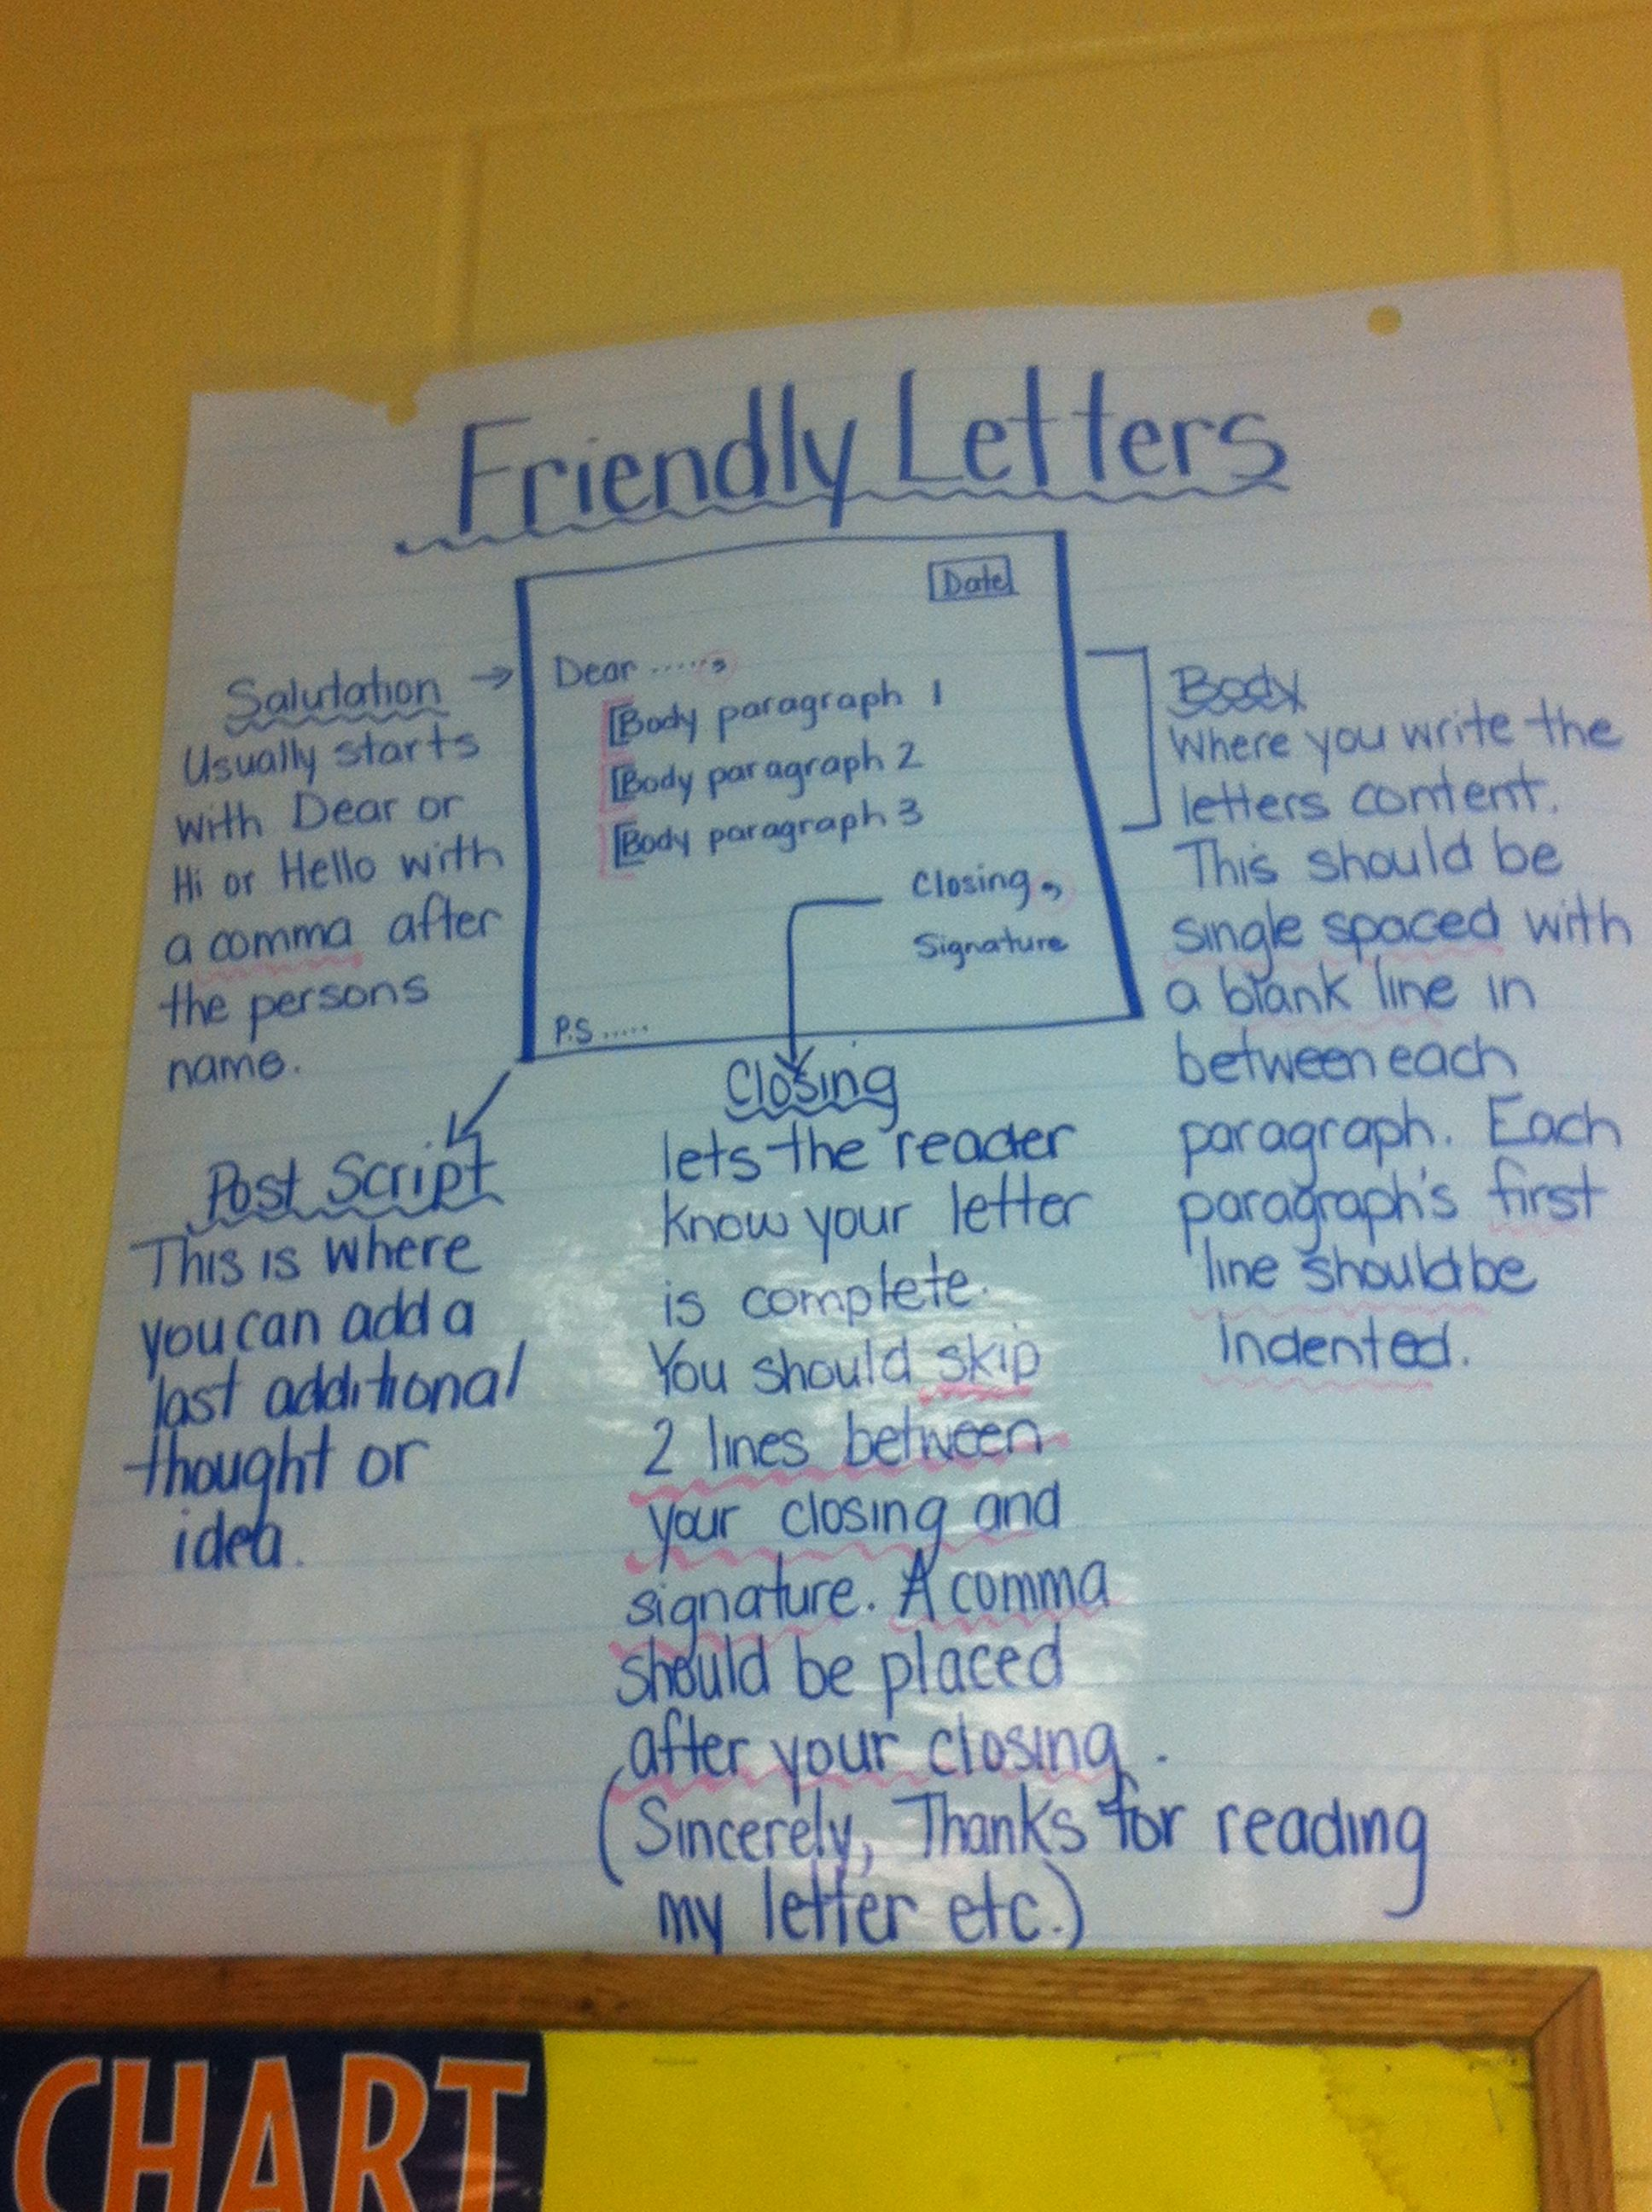 Friendly Letter Format That The Students Use To Write